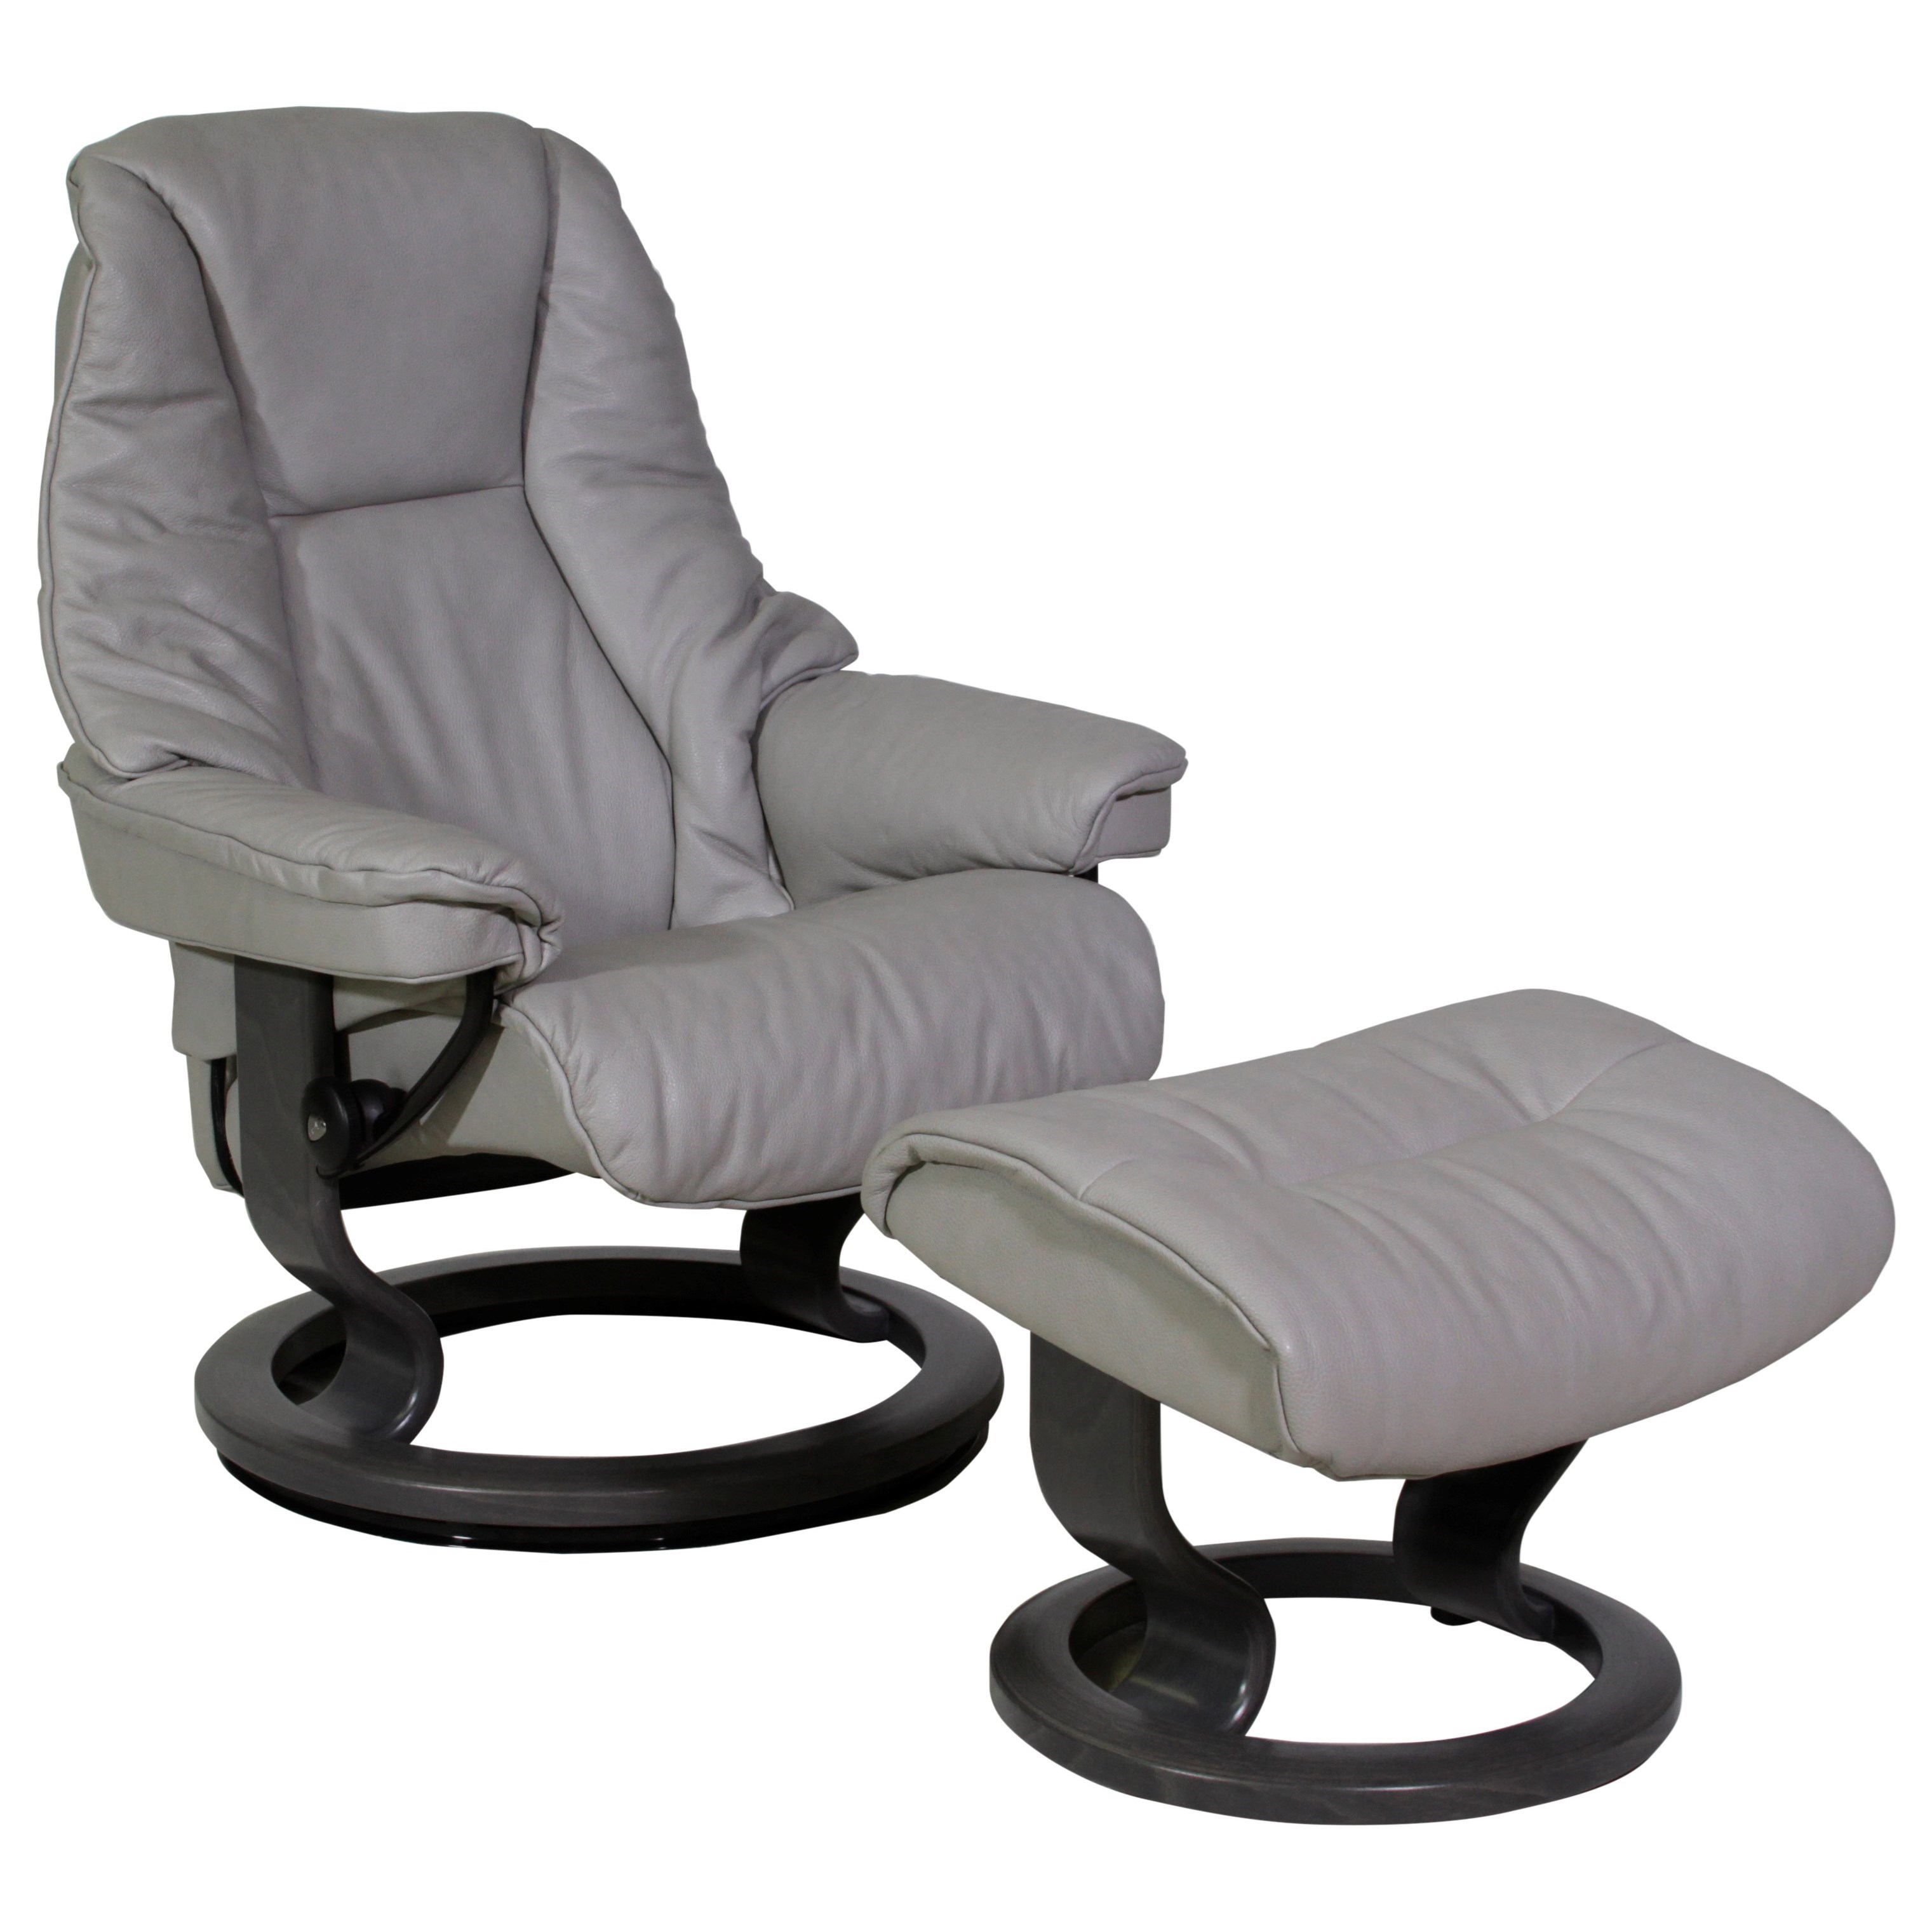 Live Small Chair & Ottoman with Classic Base by Stressless at Virginia Furniture Market